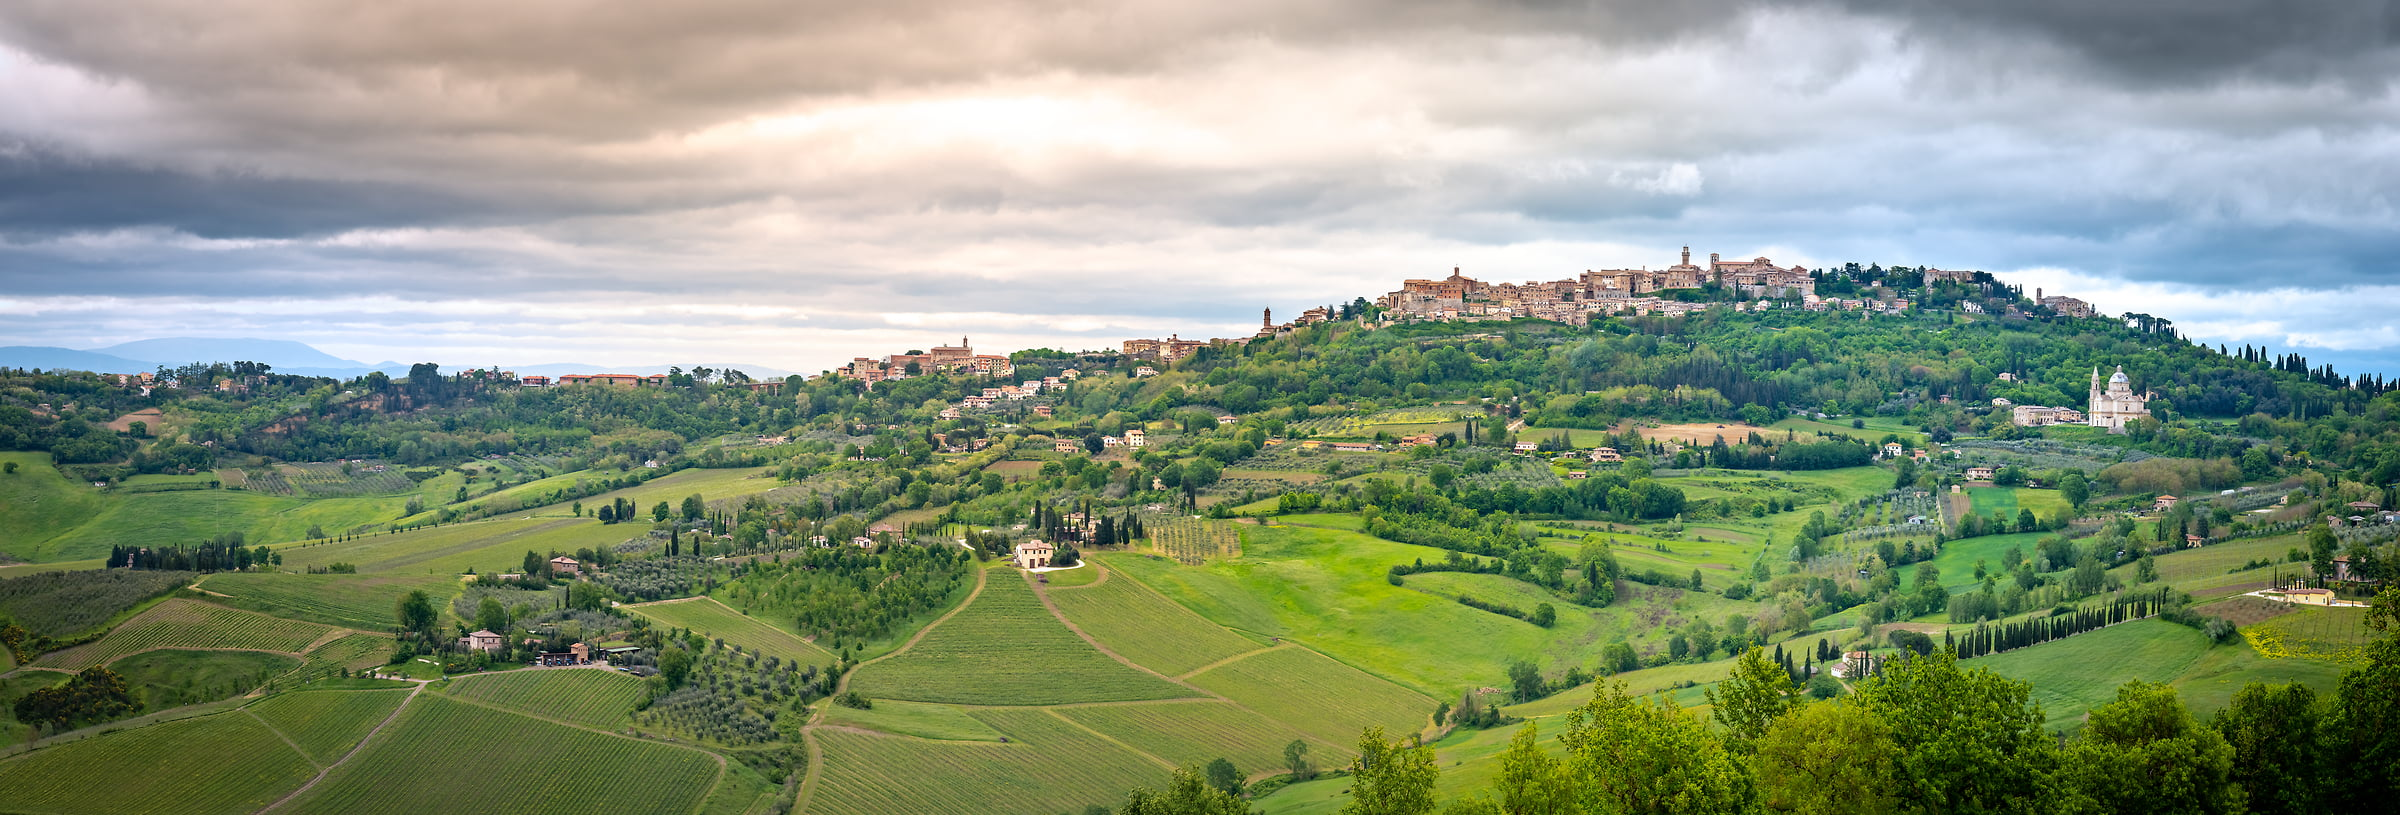 283 megapixels! A very high resolution, large-format VAST photo print of an Italian landscape; photograph created by Justin Katz in Montepulciano, Tuscany, Italy